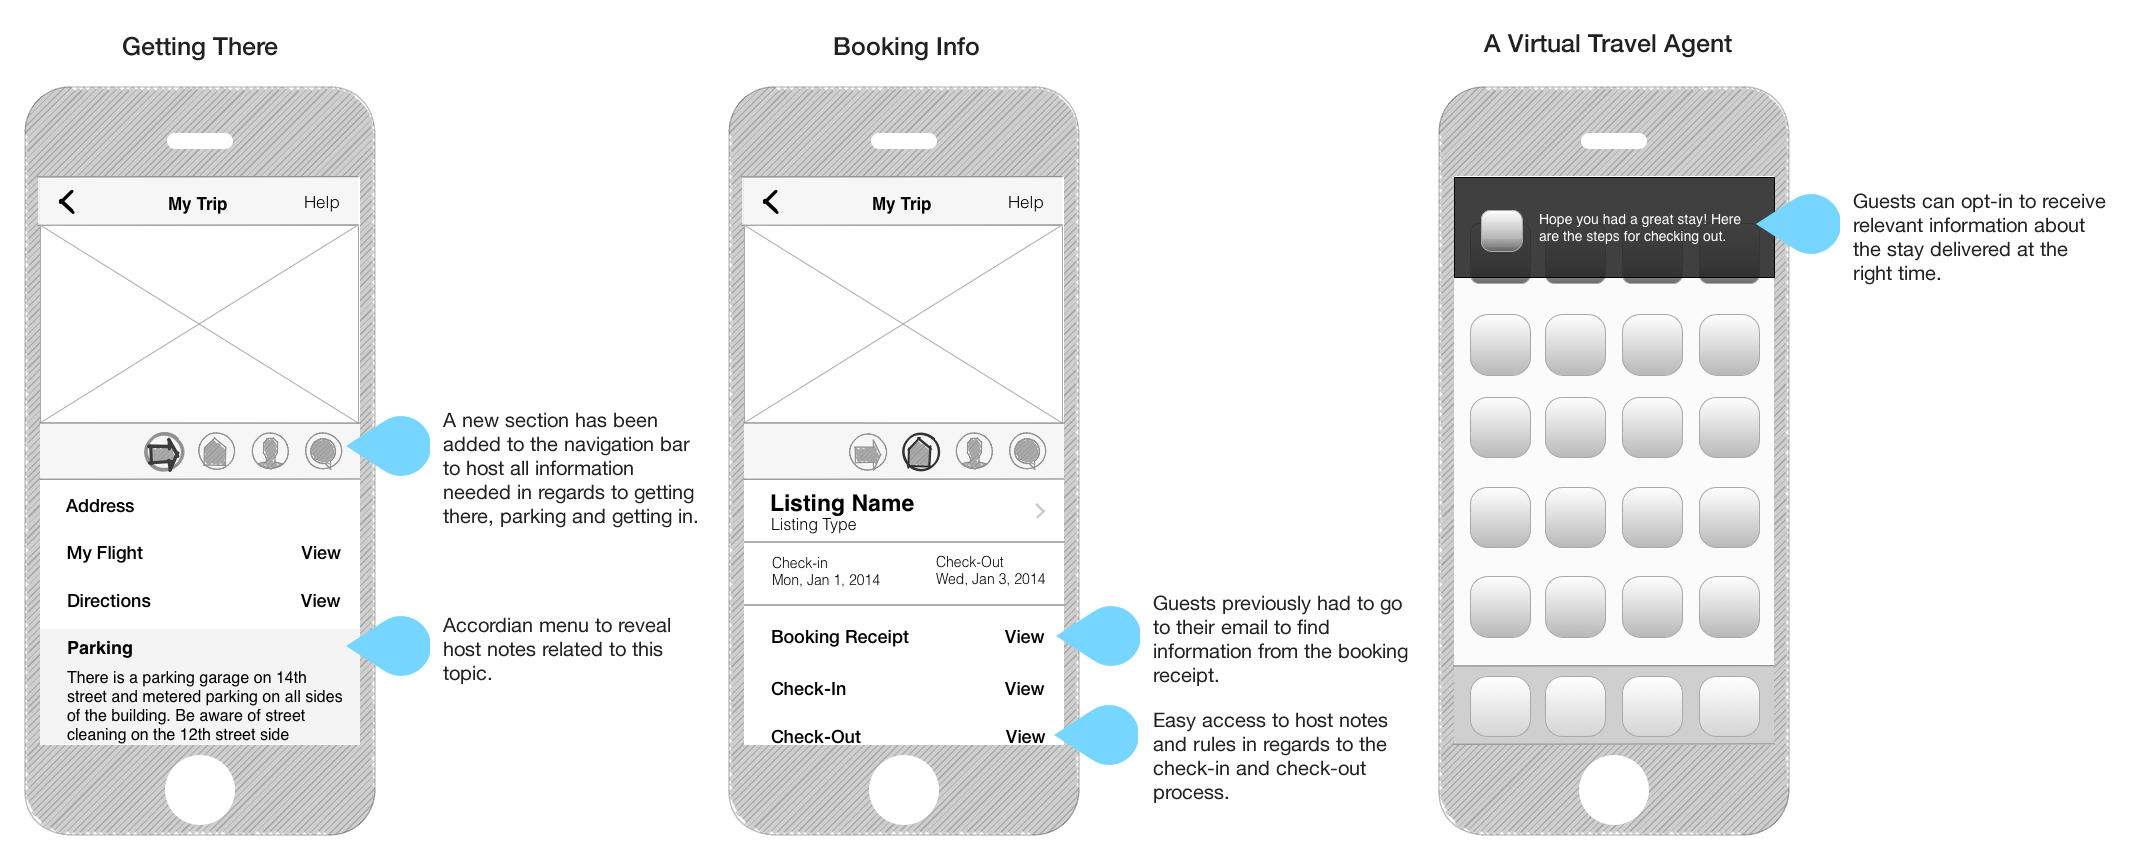 """Adding a """"Getting There"""" section not the nav bar, extracting and grouping information from host notes and proactive messaging were some of the iterations to the current app experience that would help the guest have a more frictionless trip experience."""